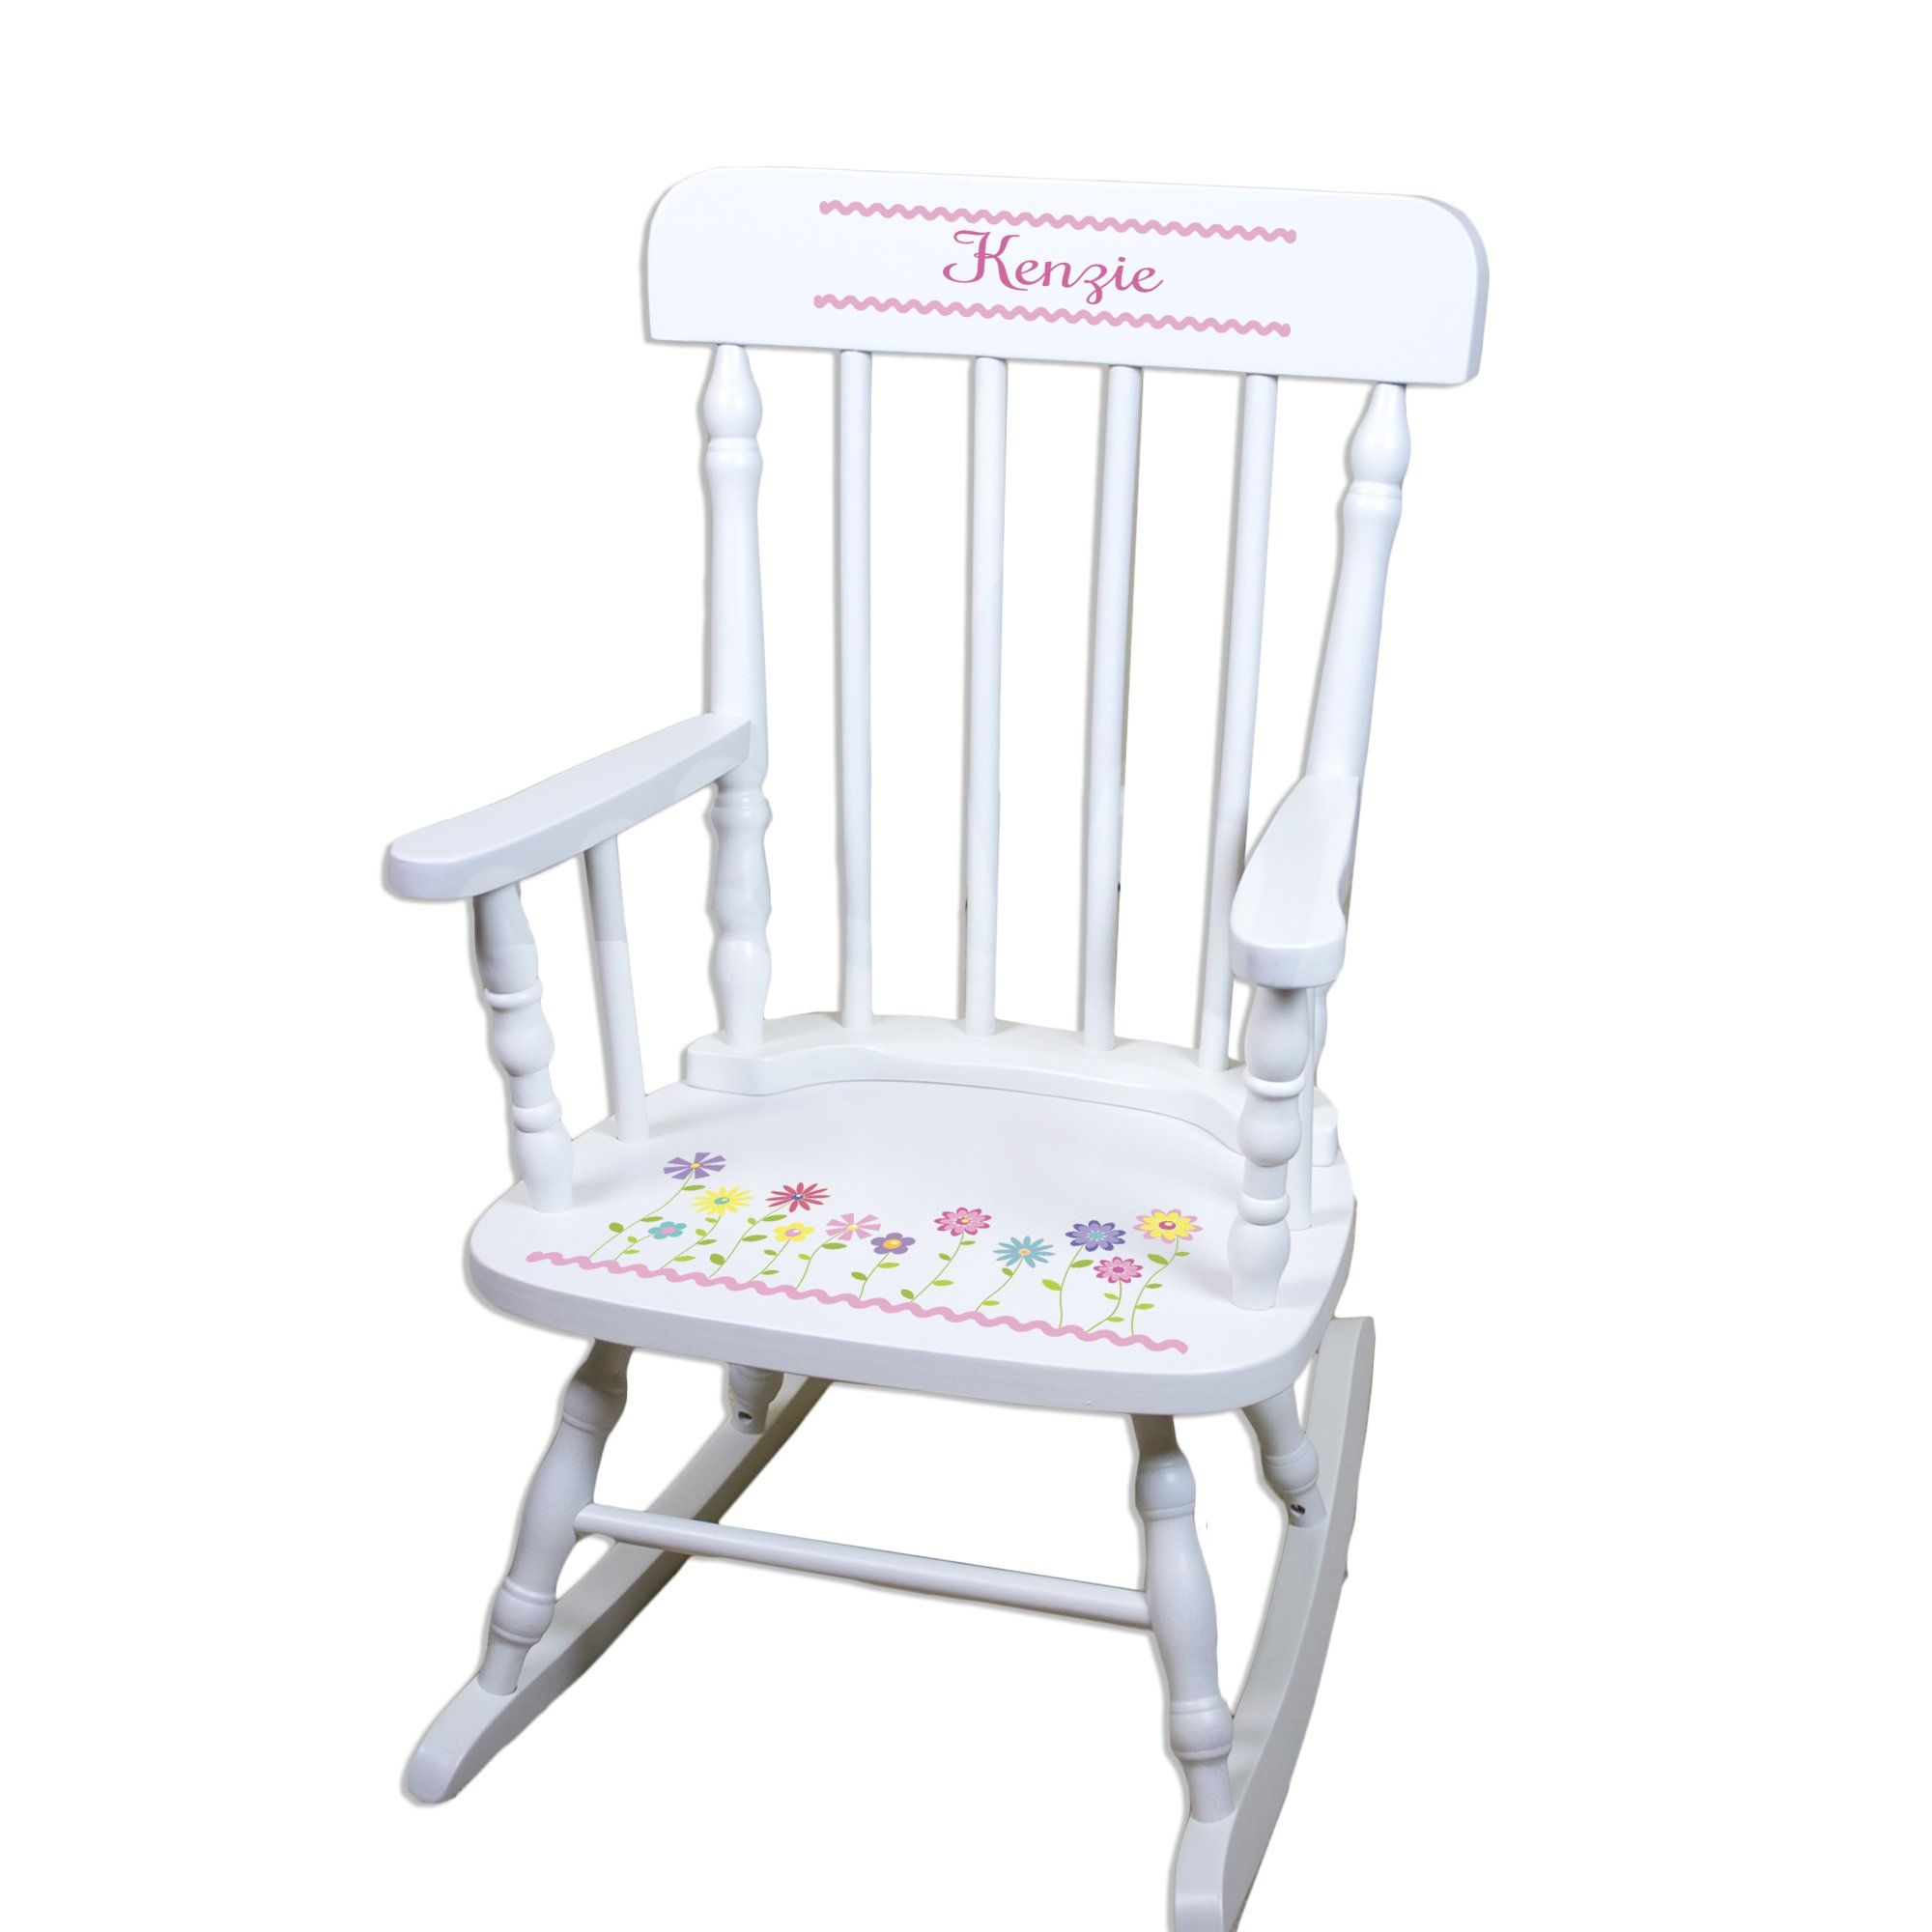 Children's Personalized White Flowers Rocking Chair